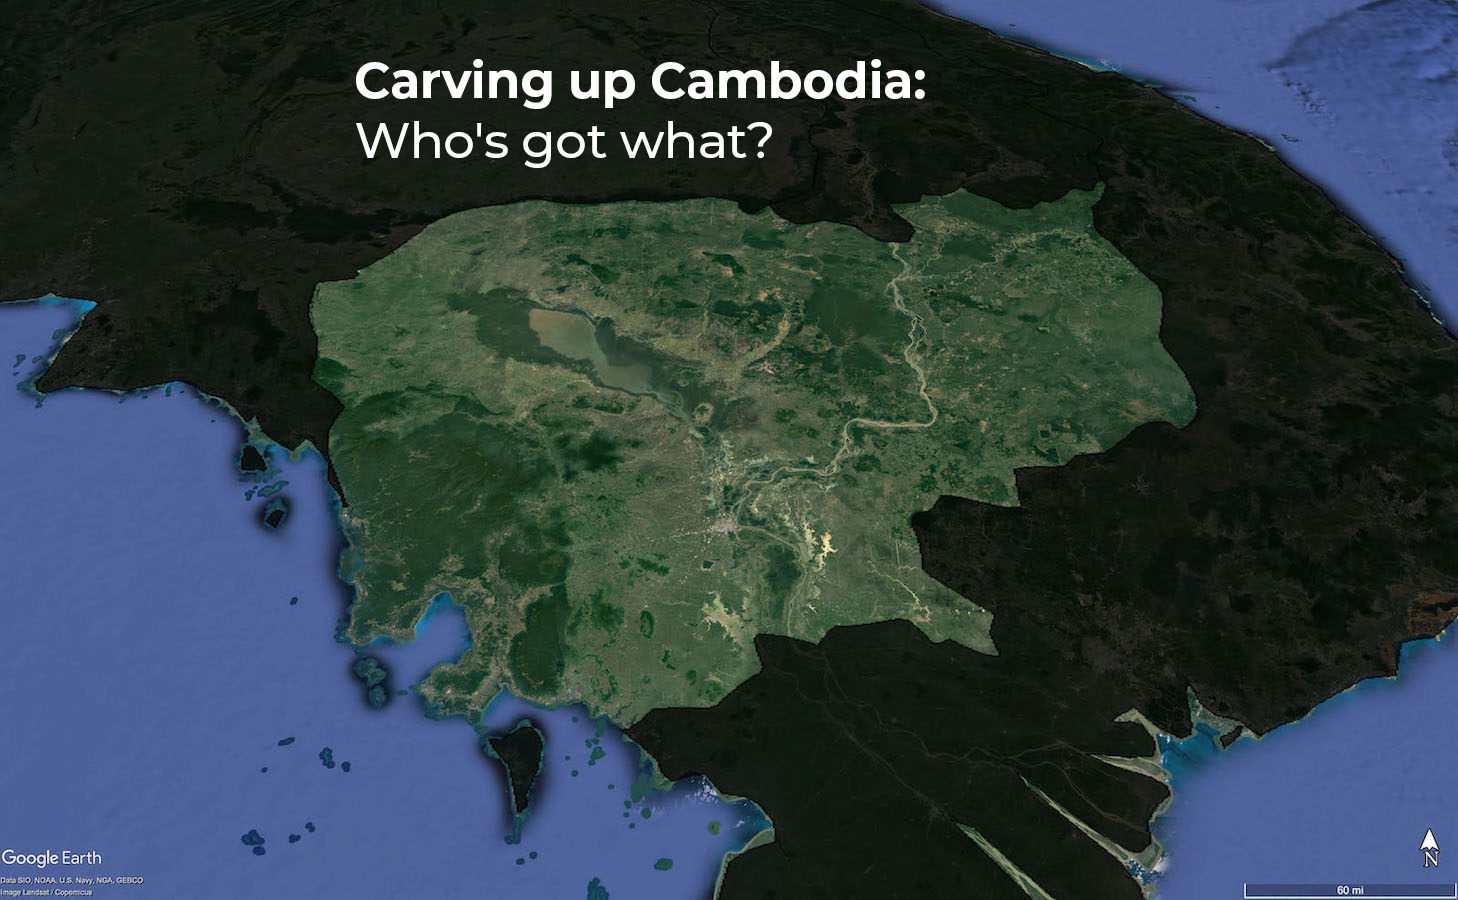 Interactive: Plundering Cambodia's forests